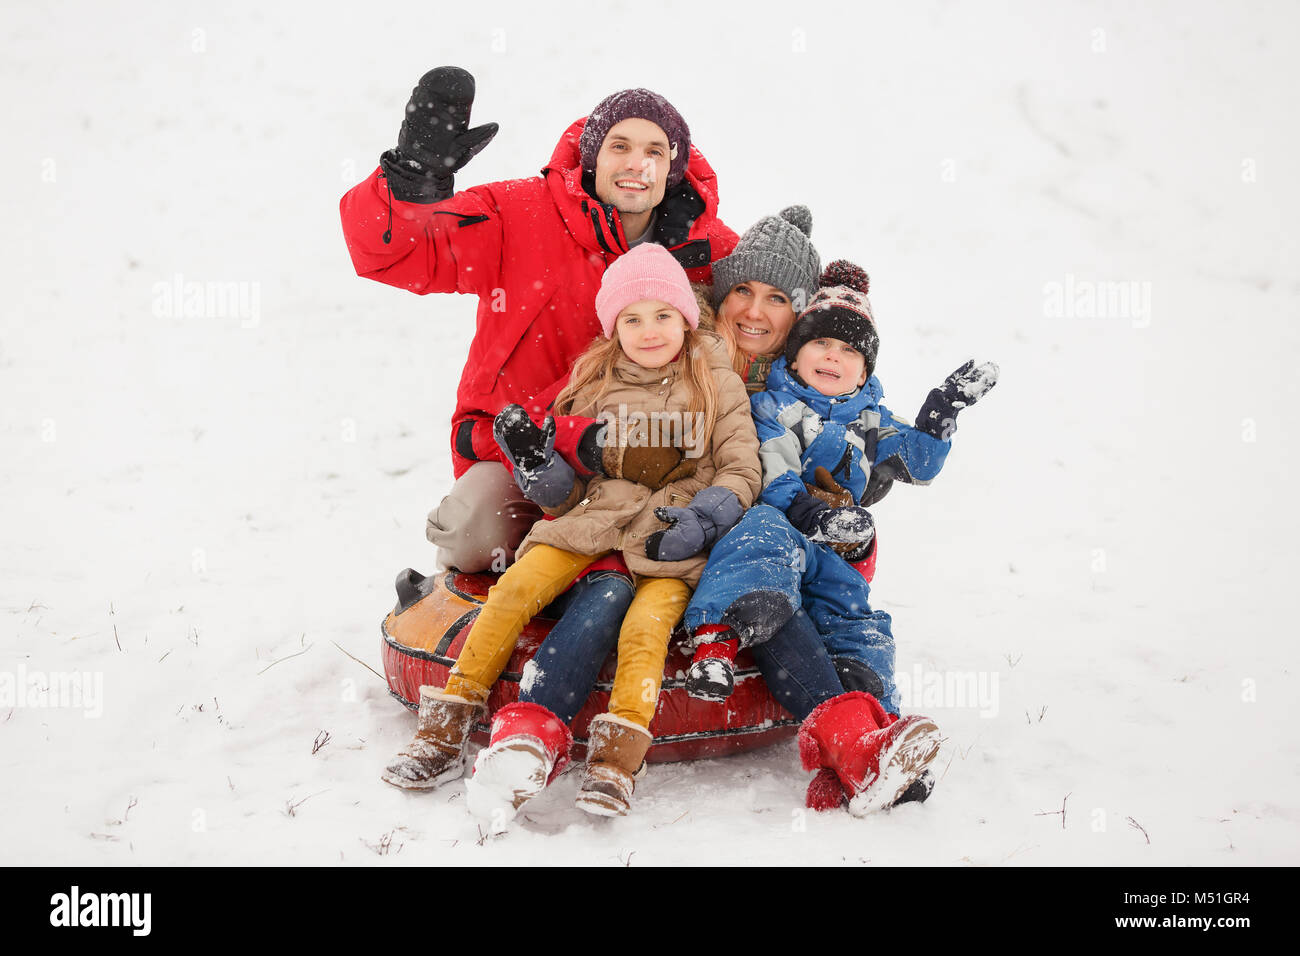 Picture of happy parents with daughter and son sitting on tubing in winter - Stock Image